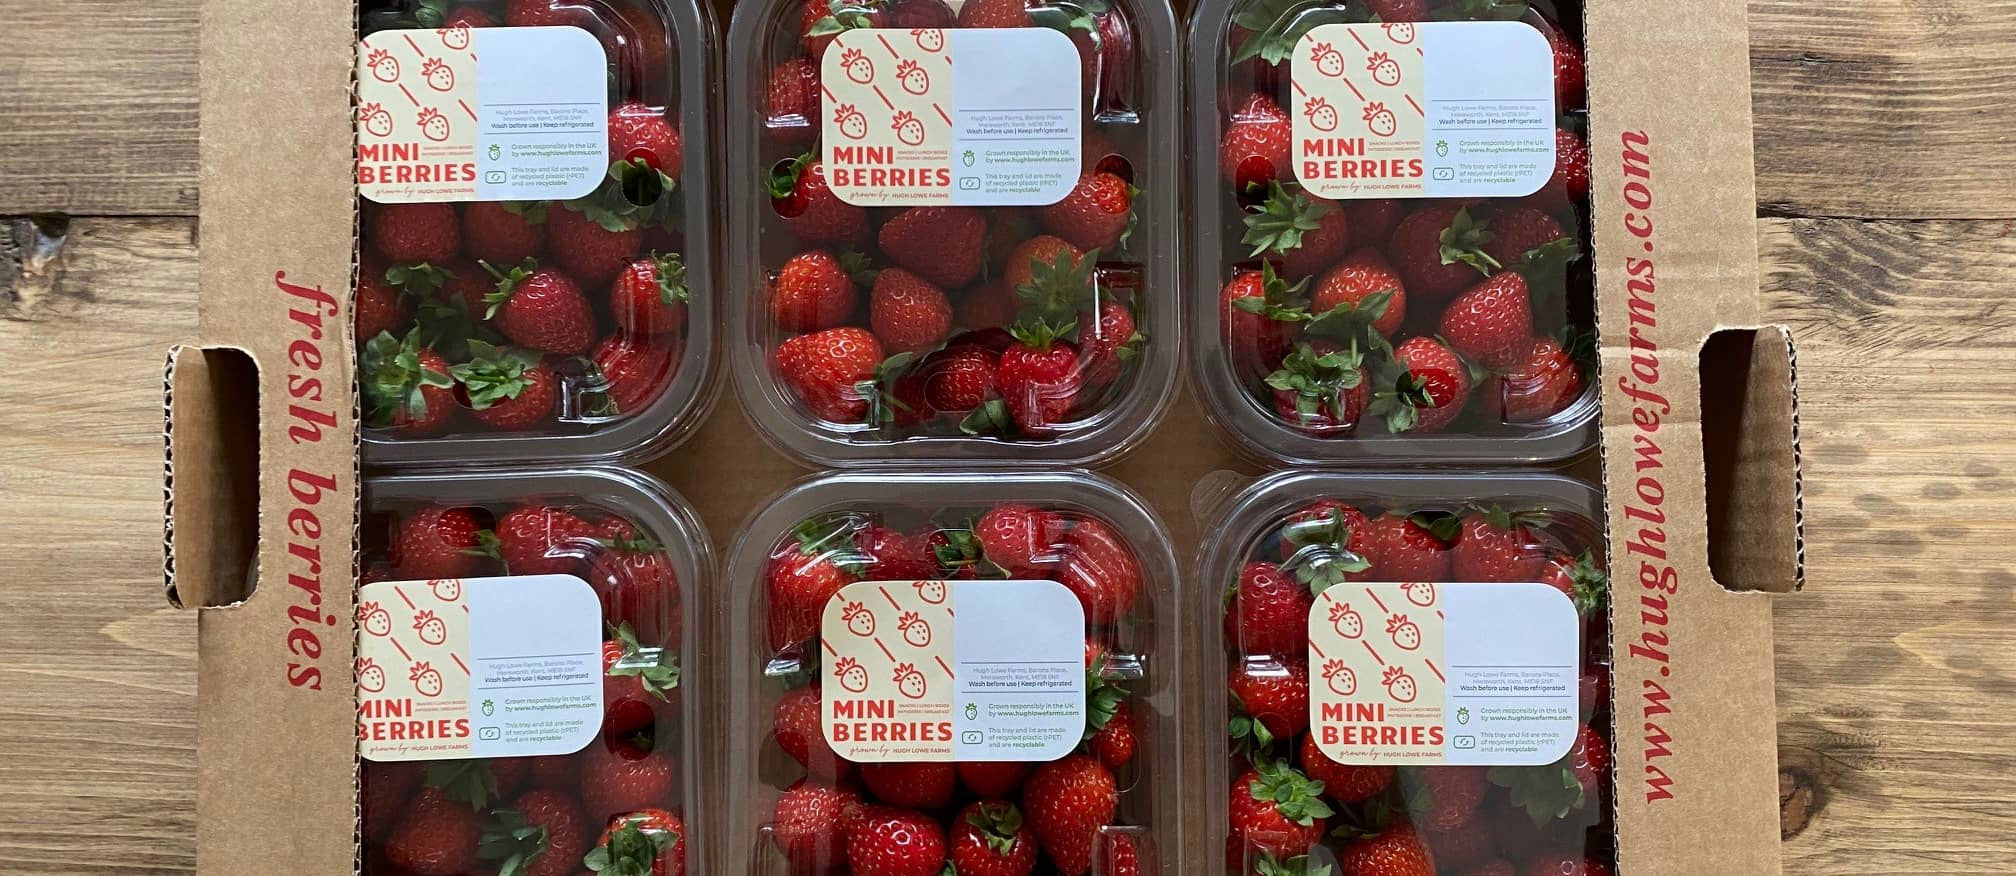 Mini Berries GrownBy Hugh Lowe Farms Launch into Waitrose and Ocado